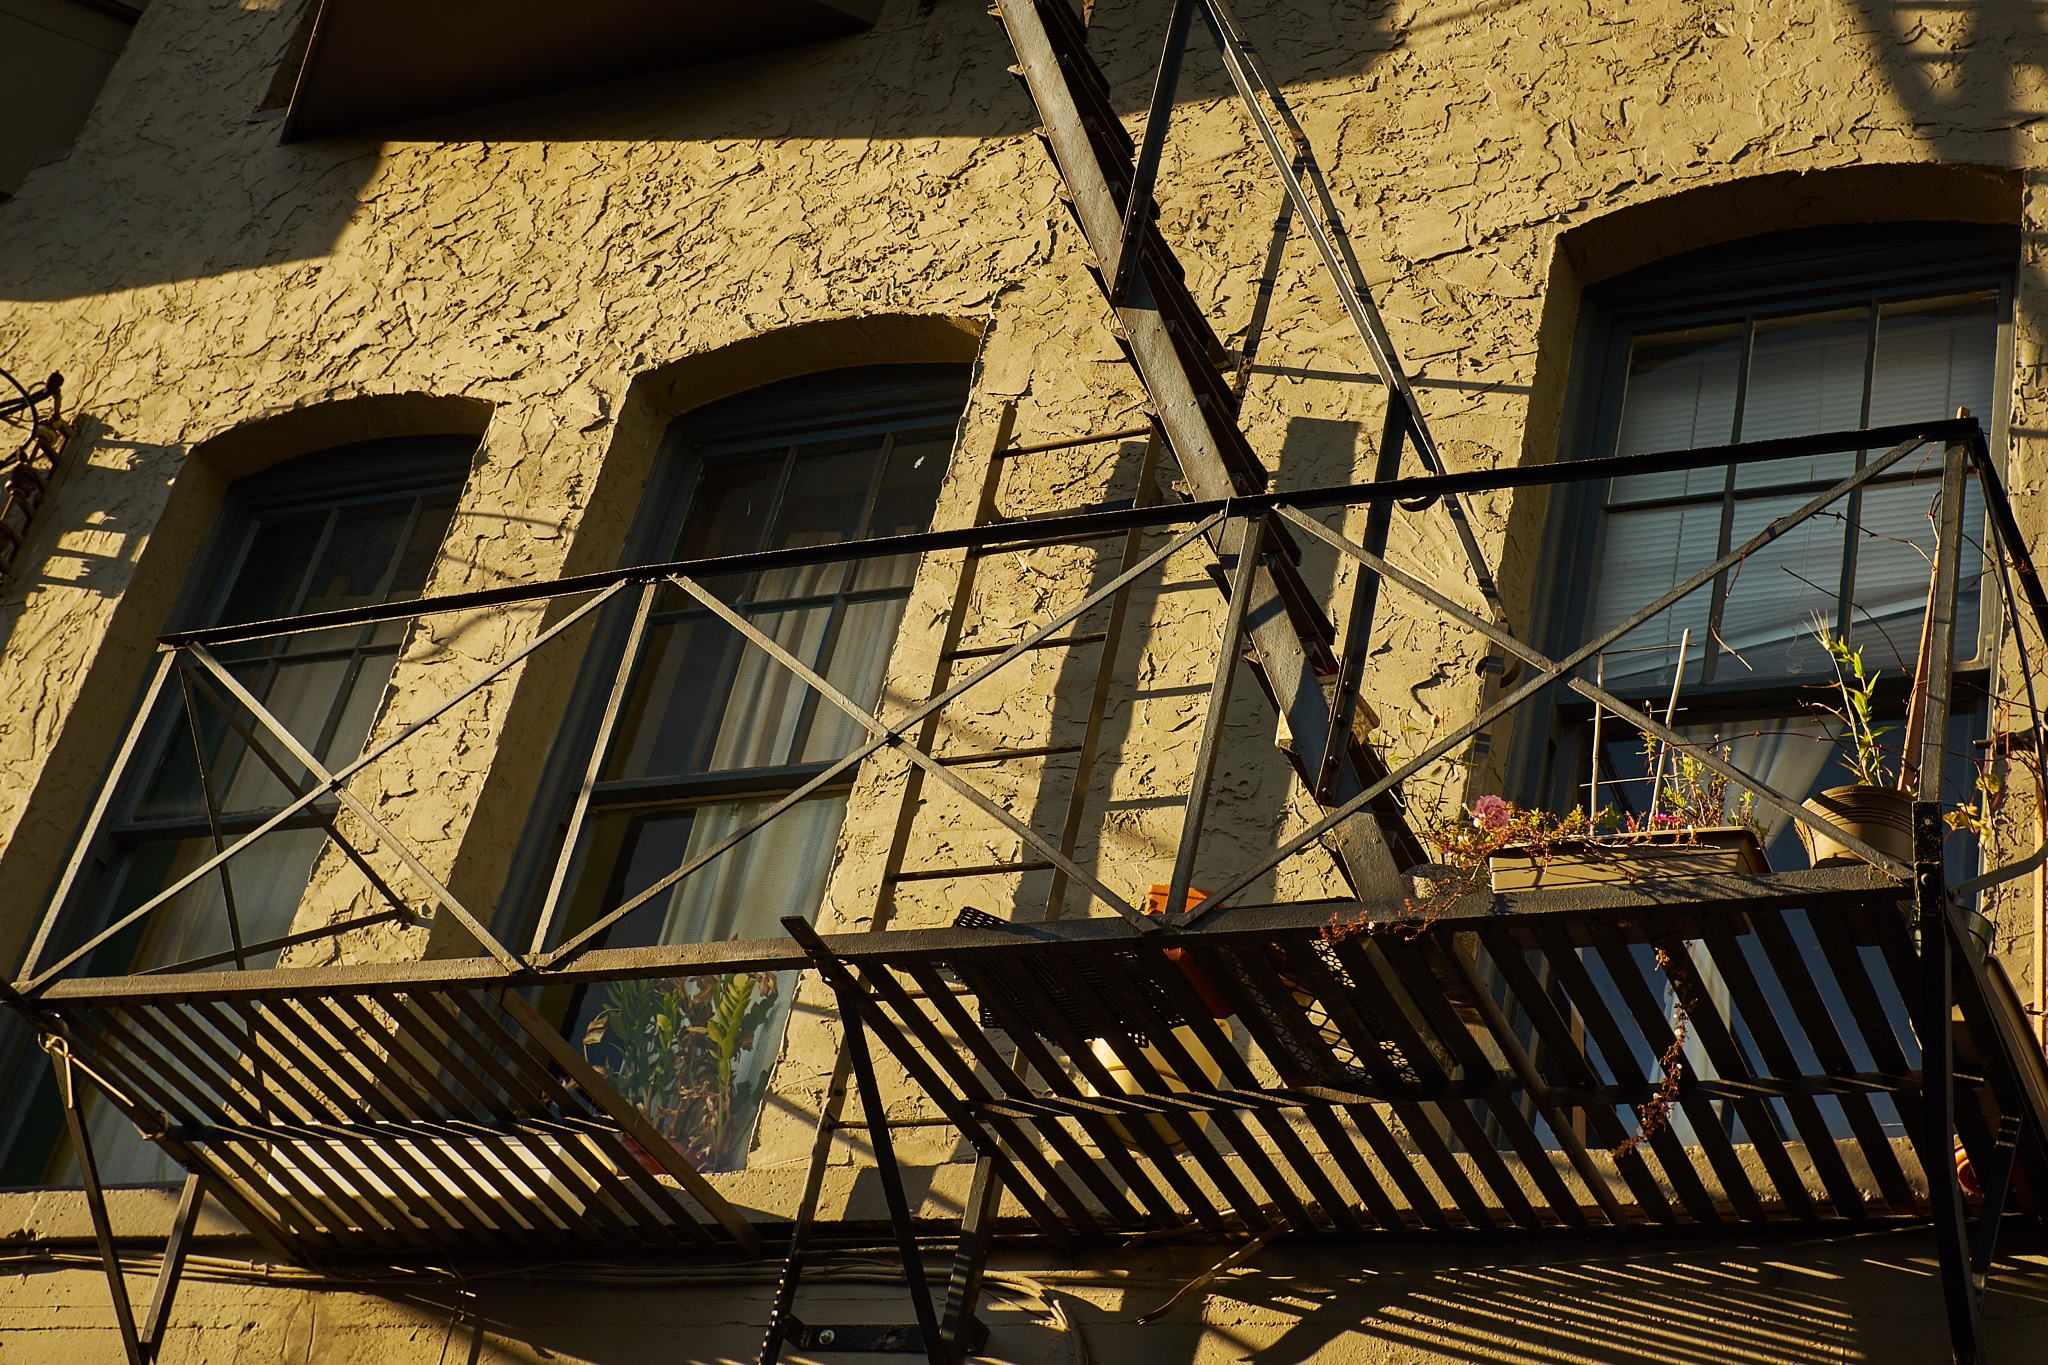 Fire escape by Greg Mullaly